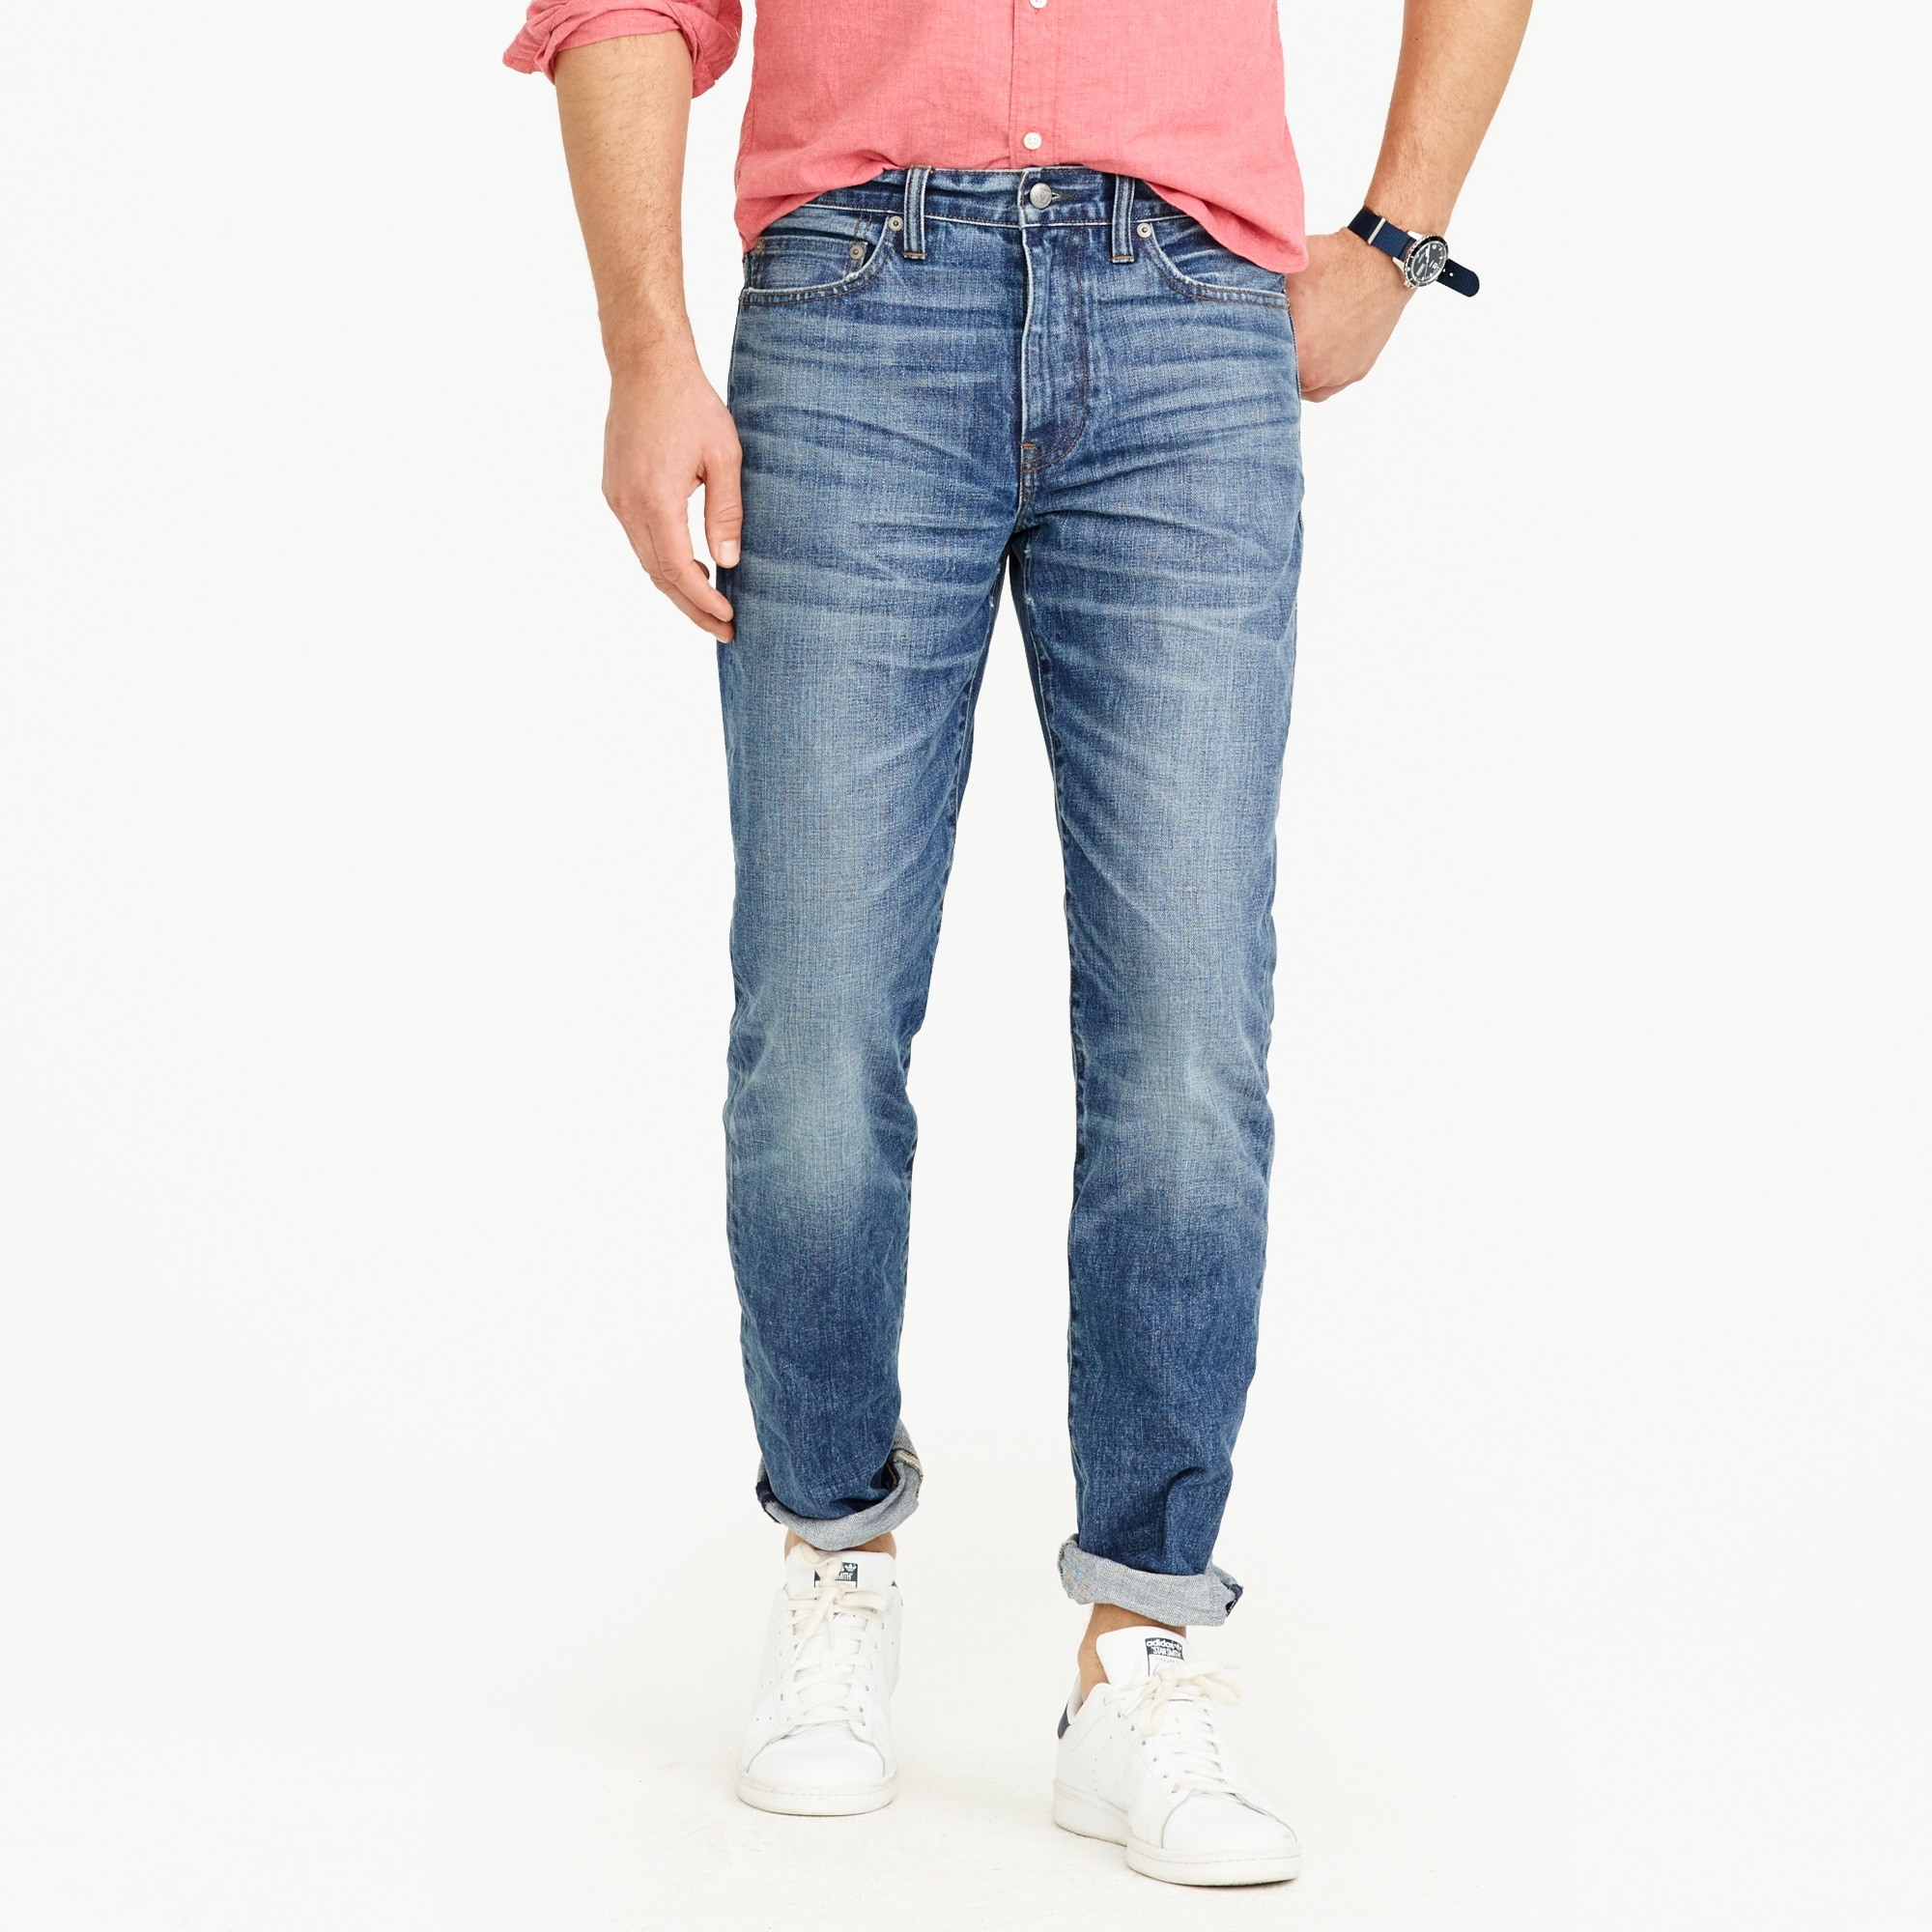 770 Straight-fit jean in Sutton wash men denim c